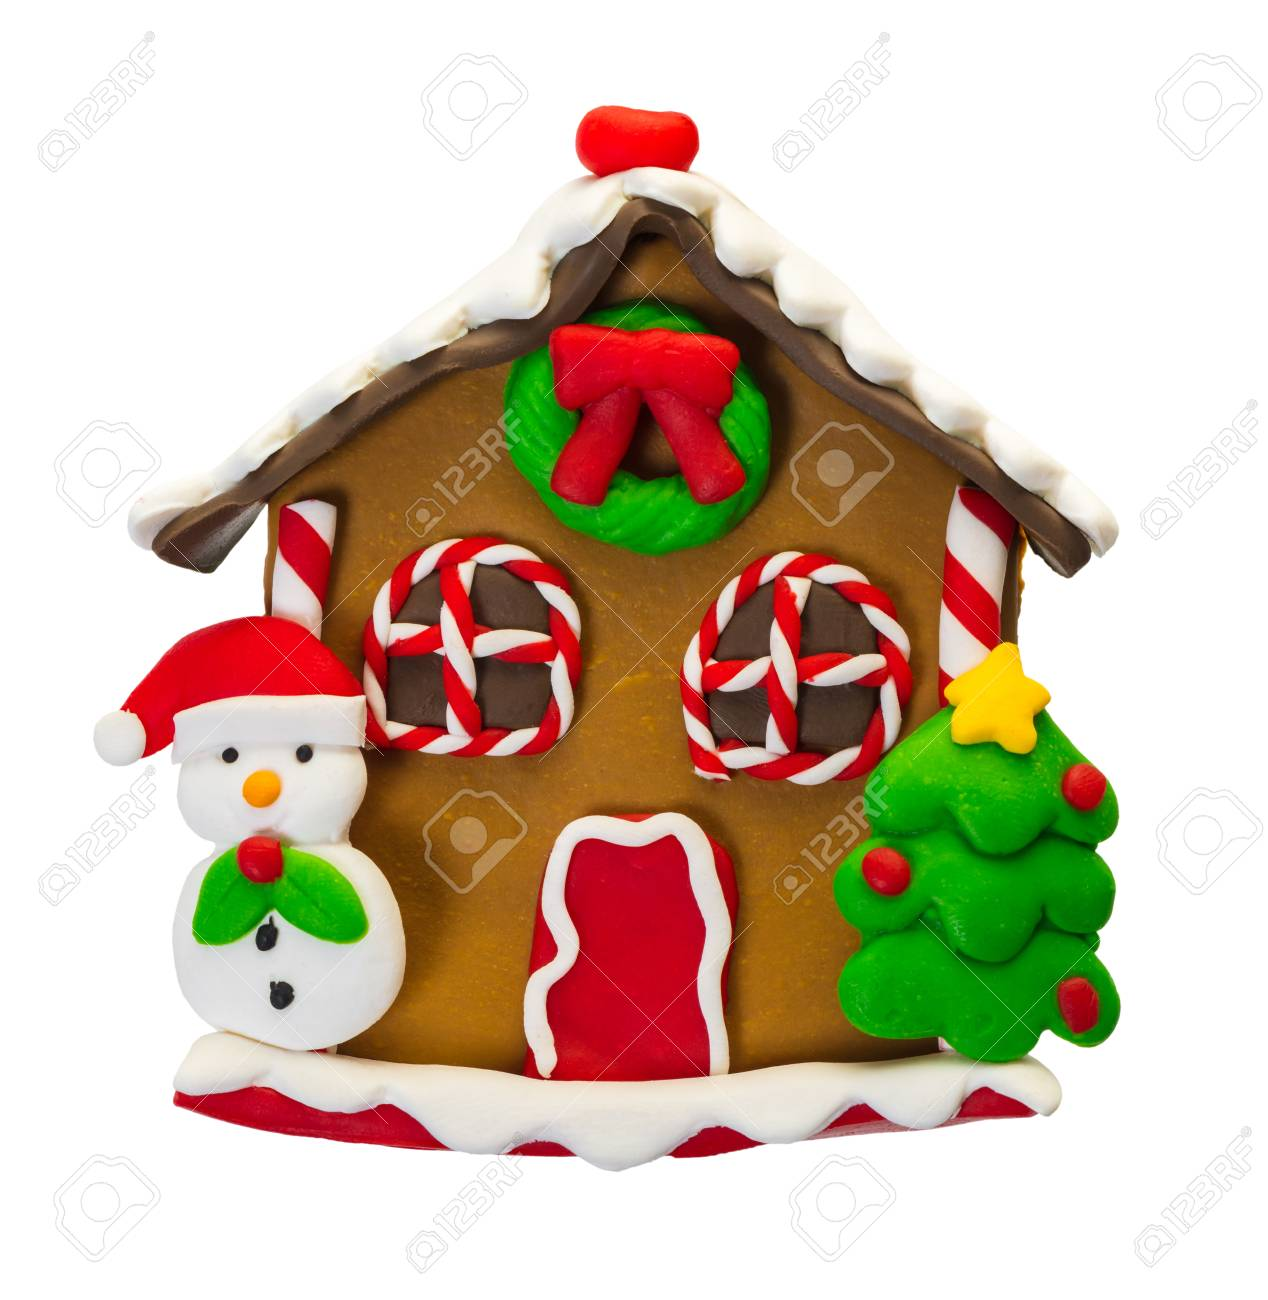 Christmas Gingerbread House Cartoon.Christmas Gingerbread House On White Isolated Background